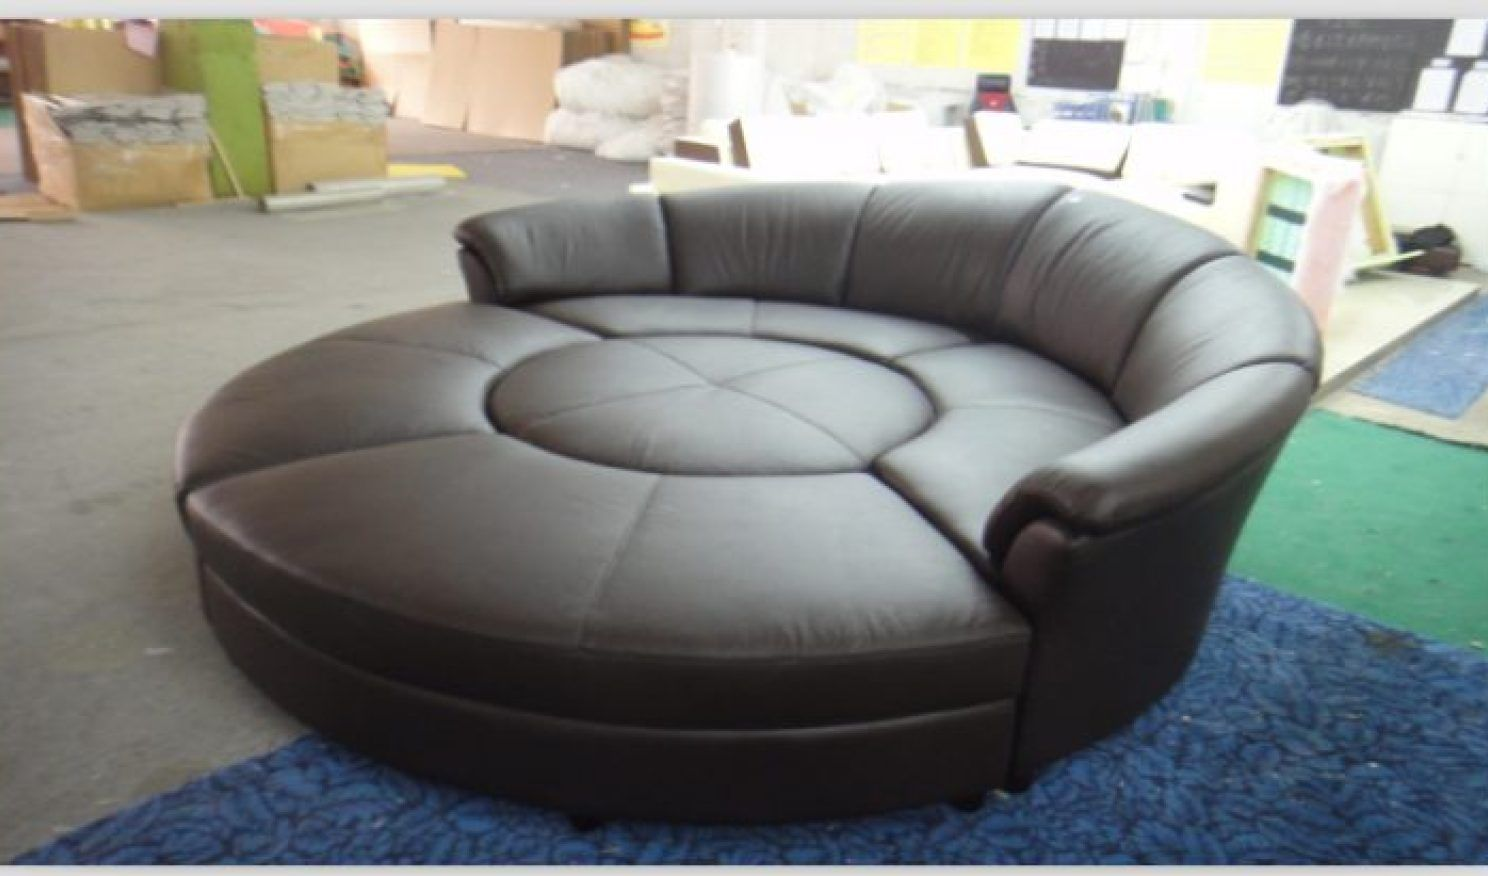 Pleasant Elegant Big Circle Chair Snuggle Sofa Round Bed Couch Swivel Machost Co Dining Chair Design Ideas Machostcouk